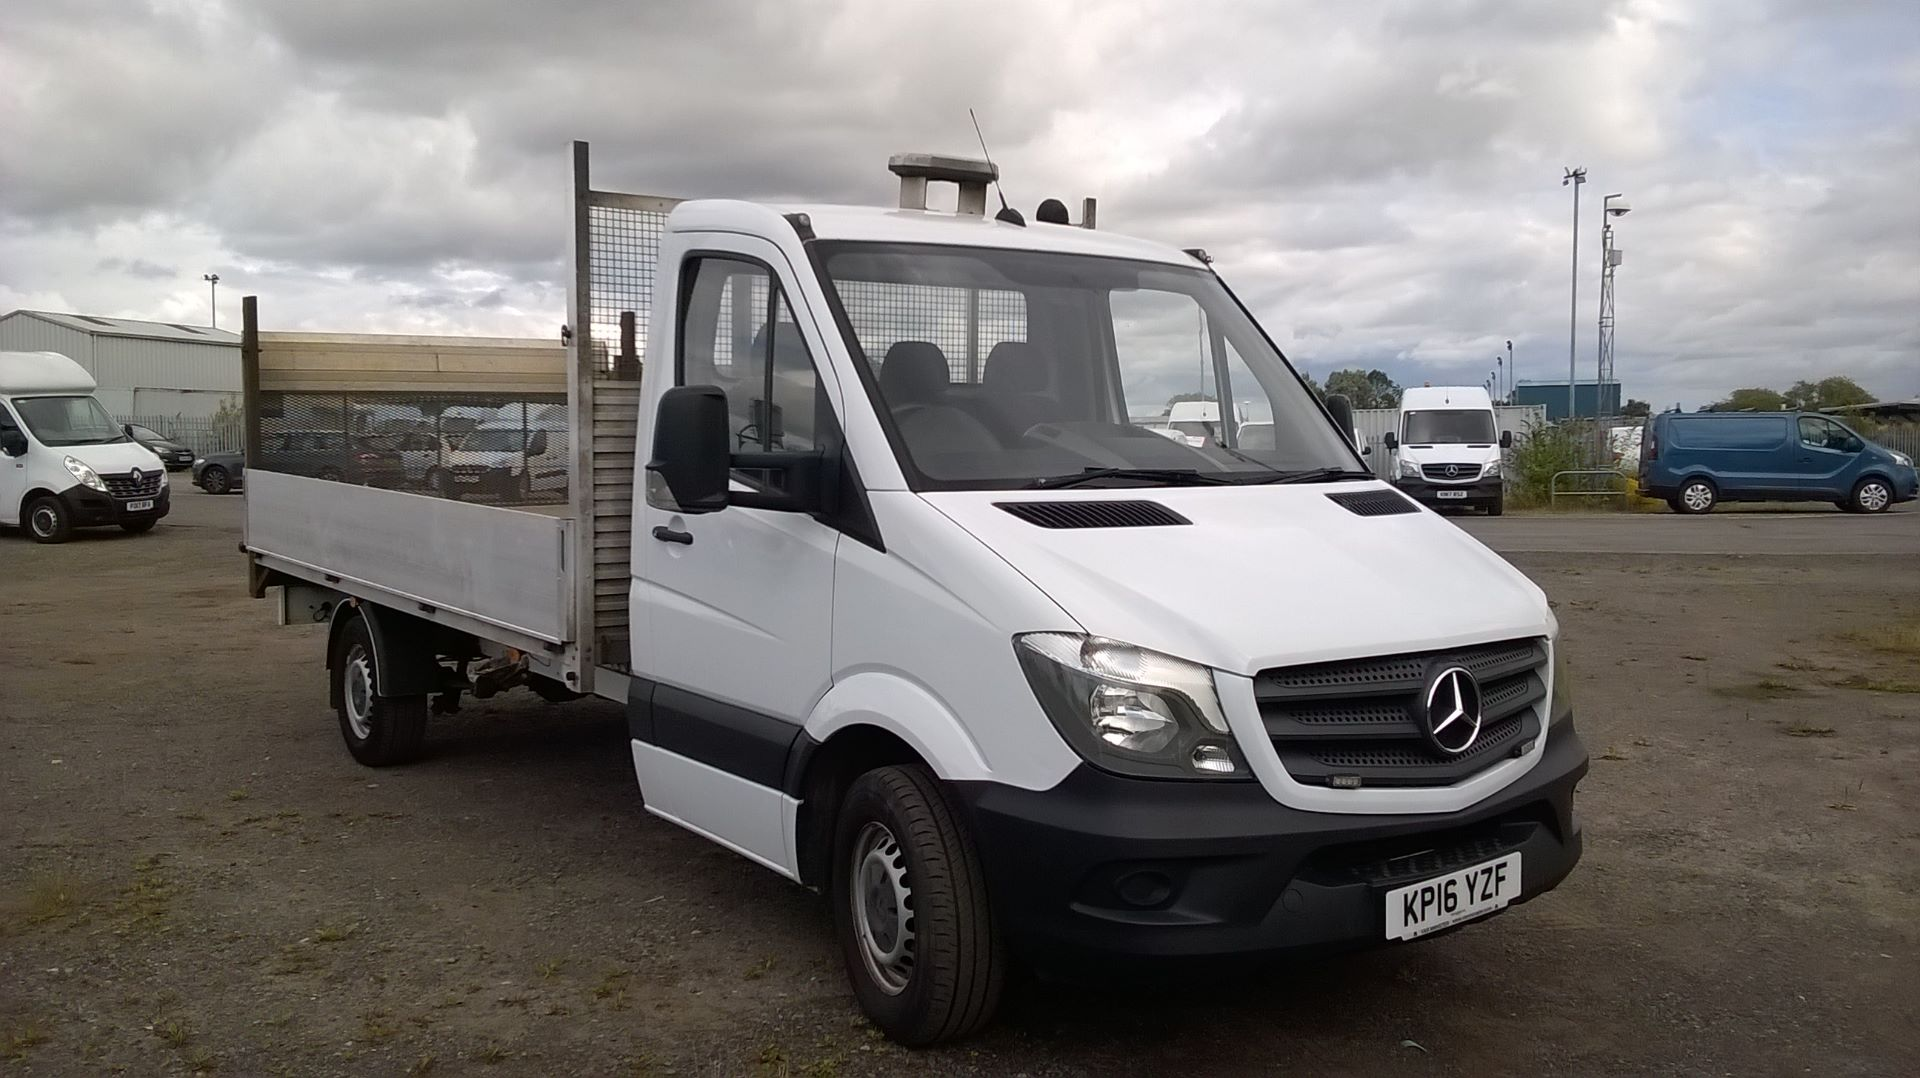 2016 Mercedes-Benz Sprinter 3.5T Chassis Cab  (VALUE RANGE VEHICLE CONDITION REFLECTED IN PRICE (KP16YZF)